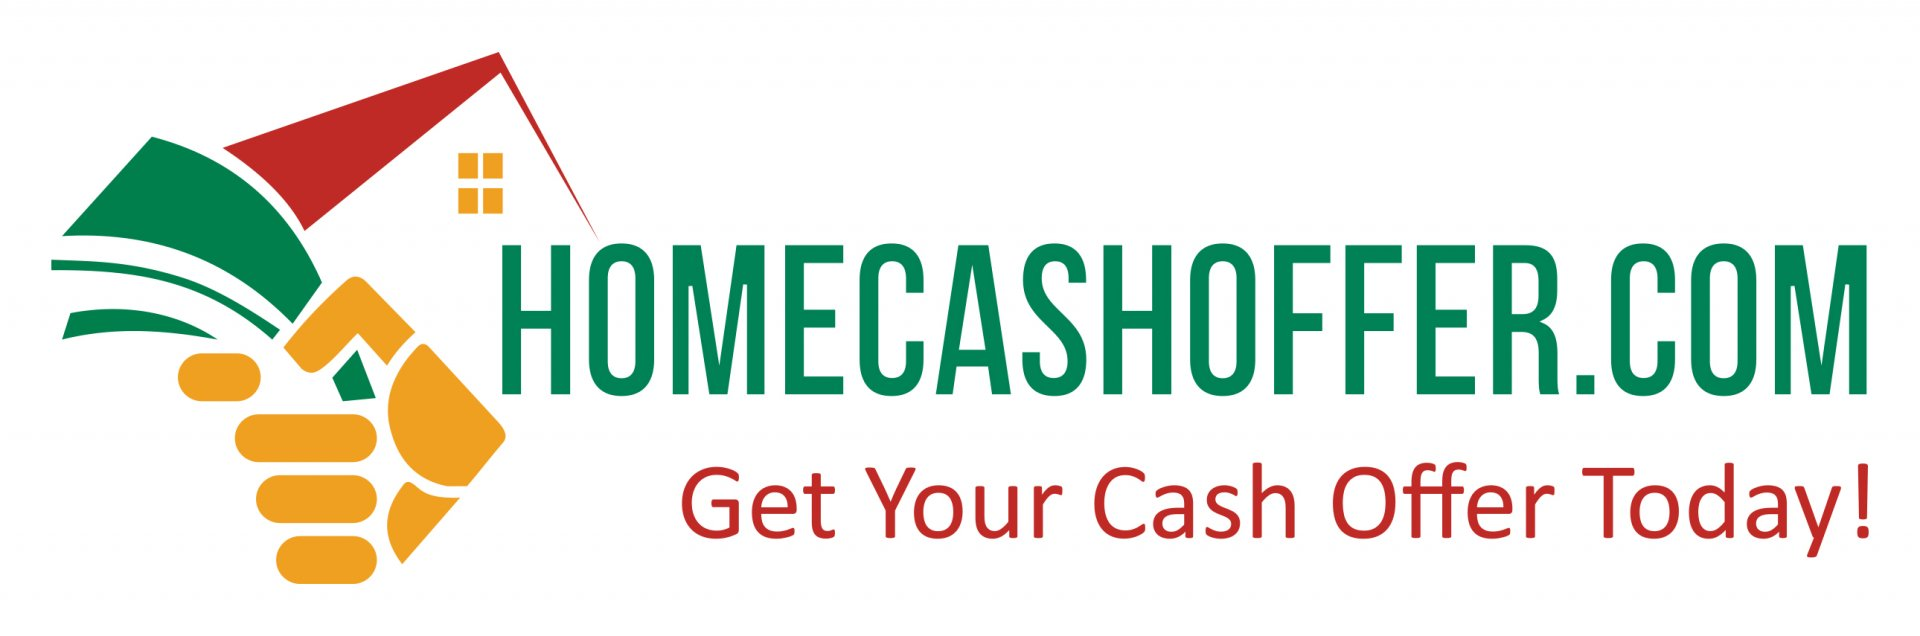 Home Cash Offer logo